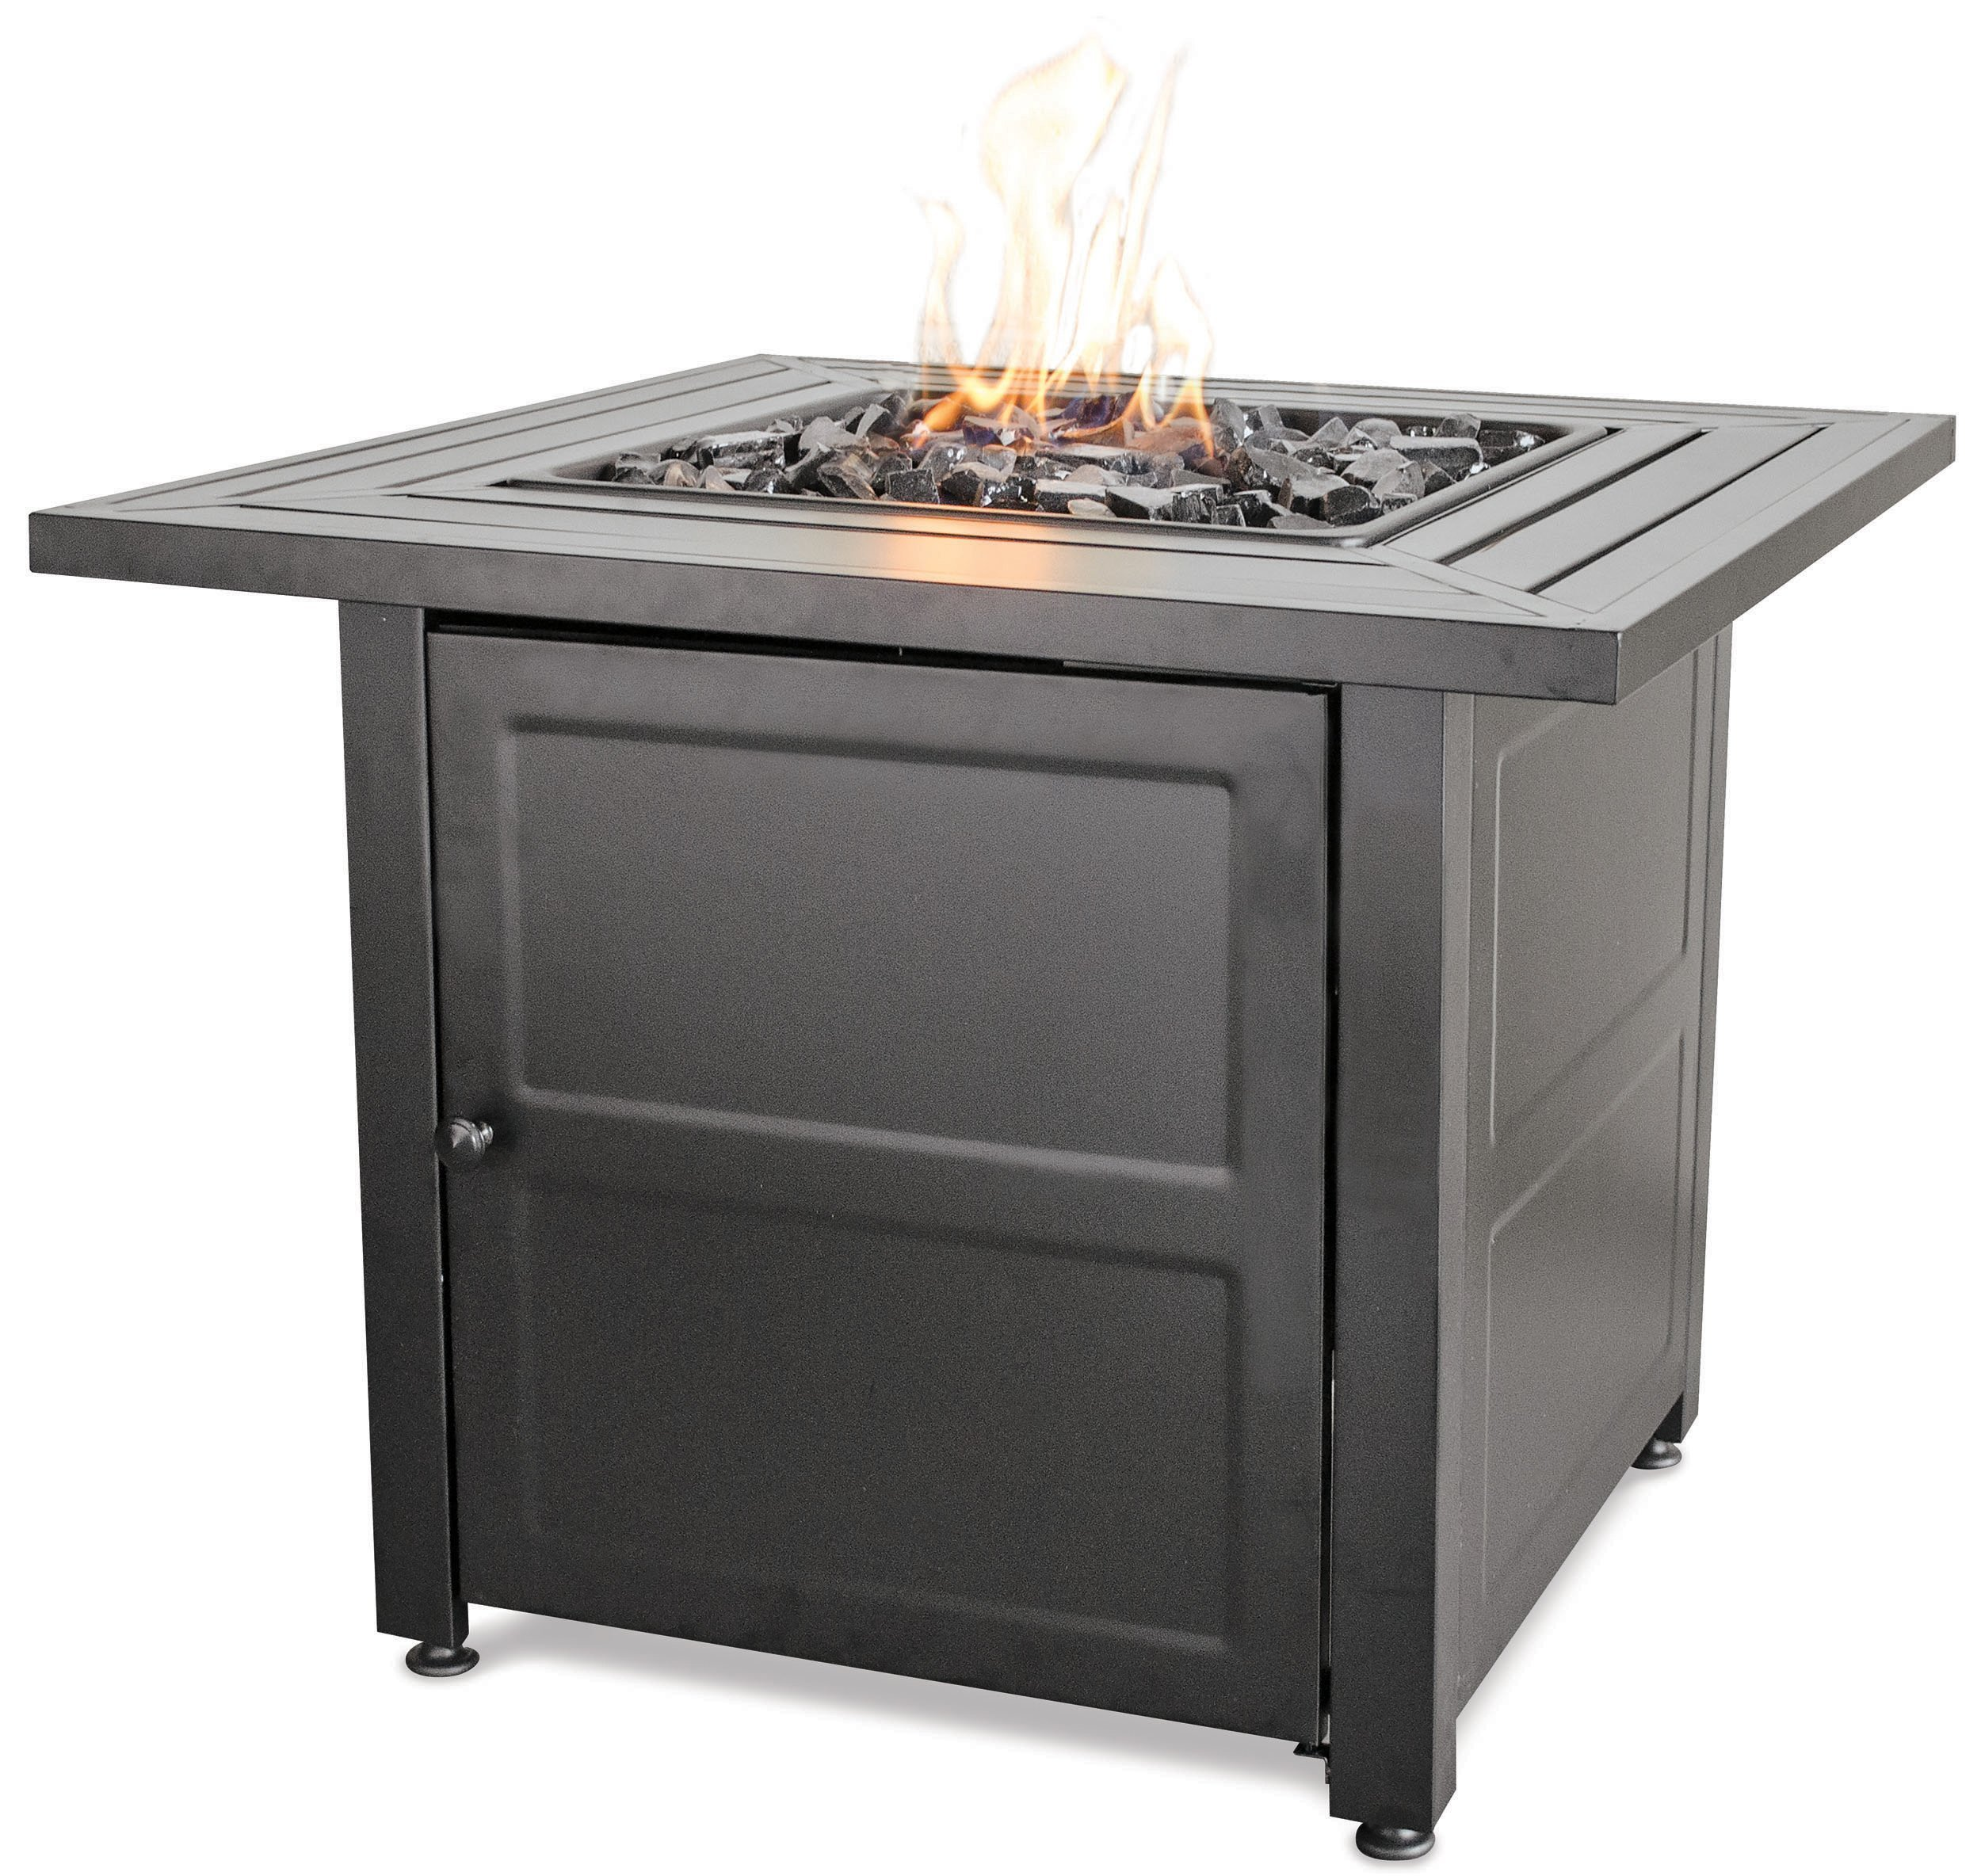 Endless Summer LP Gas Outdoor Fire Bowl with Steel Mantel by Endless Summer